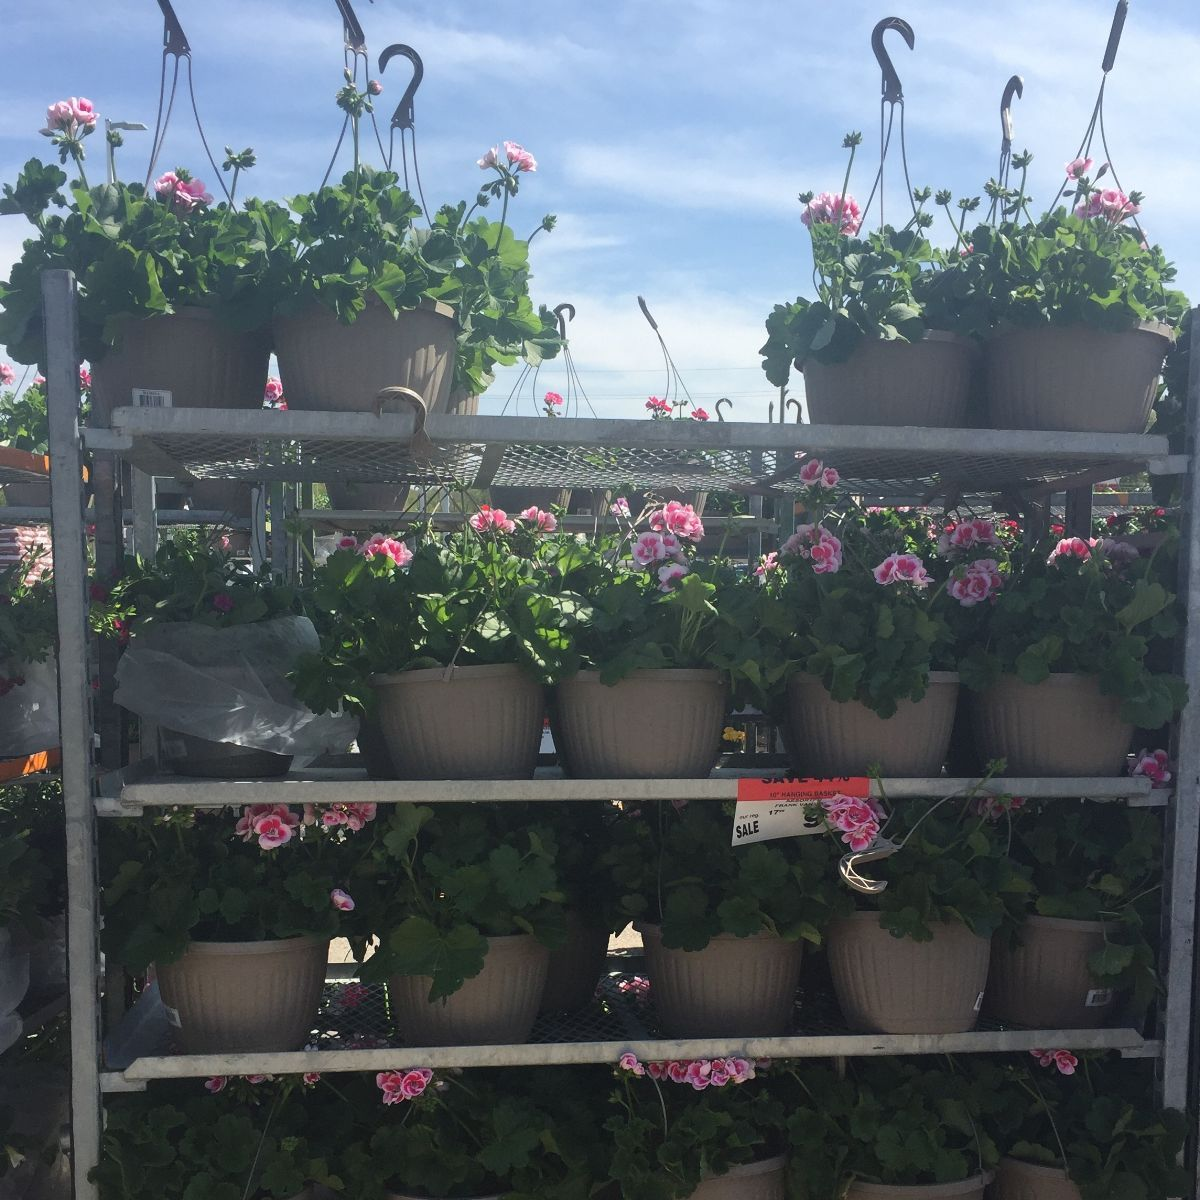 rows of hanging baskets